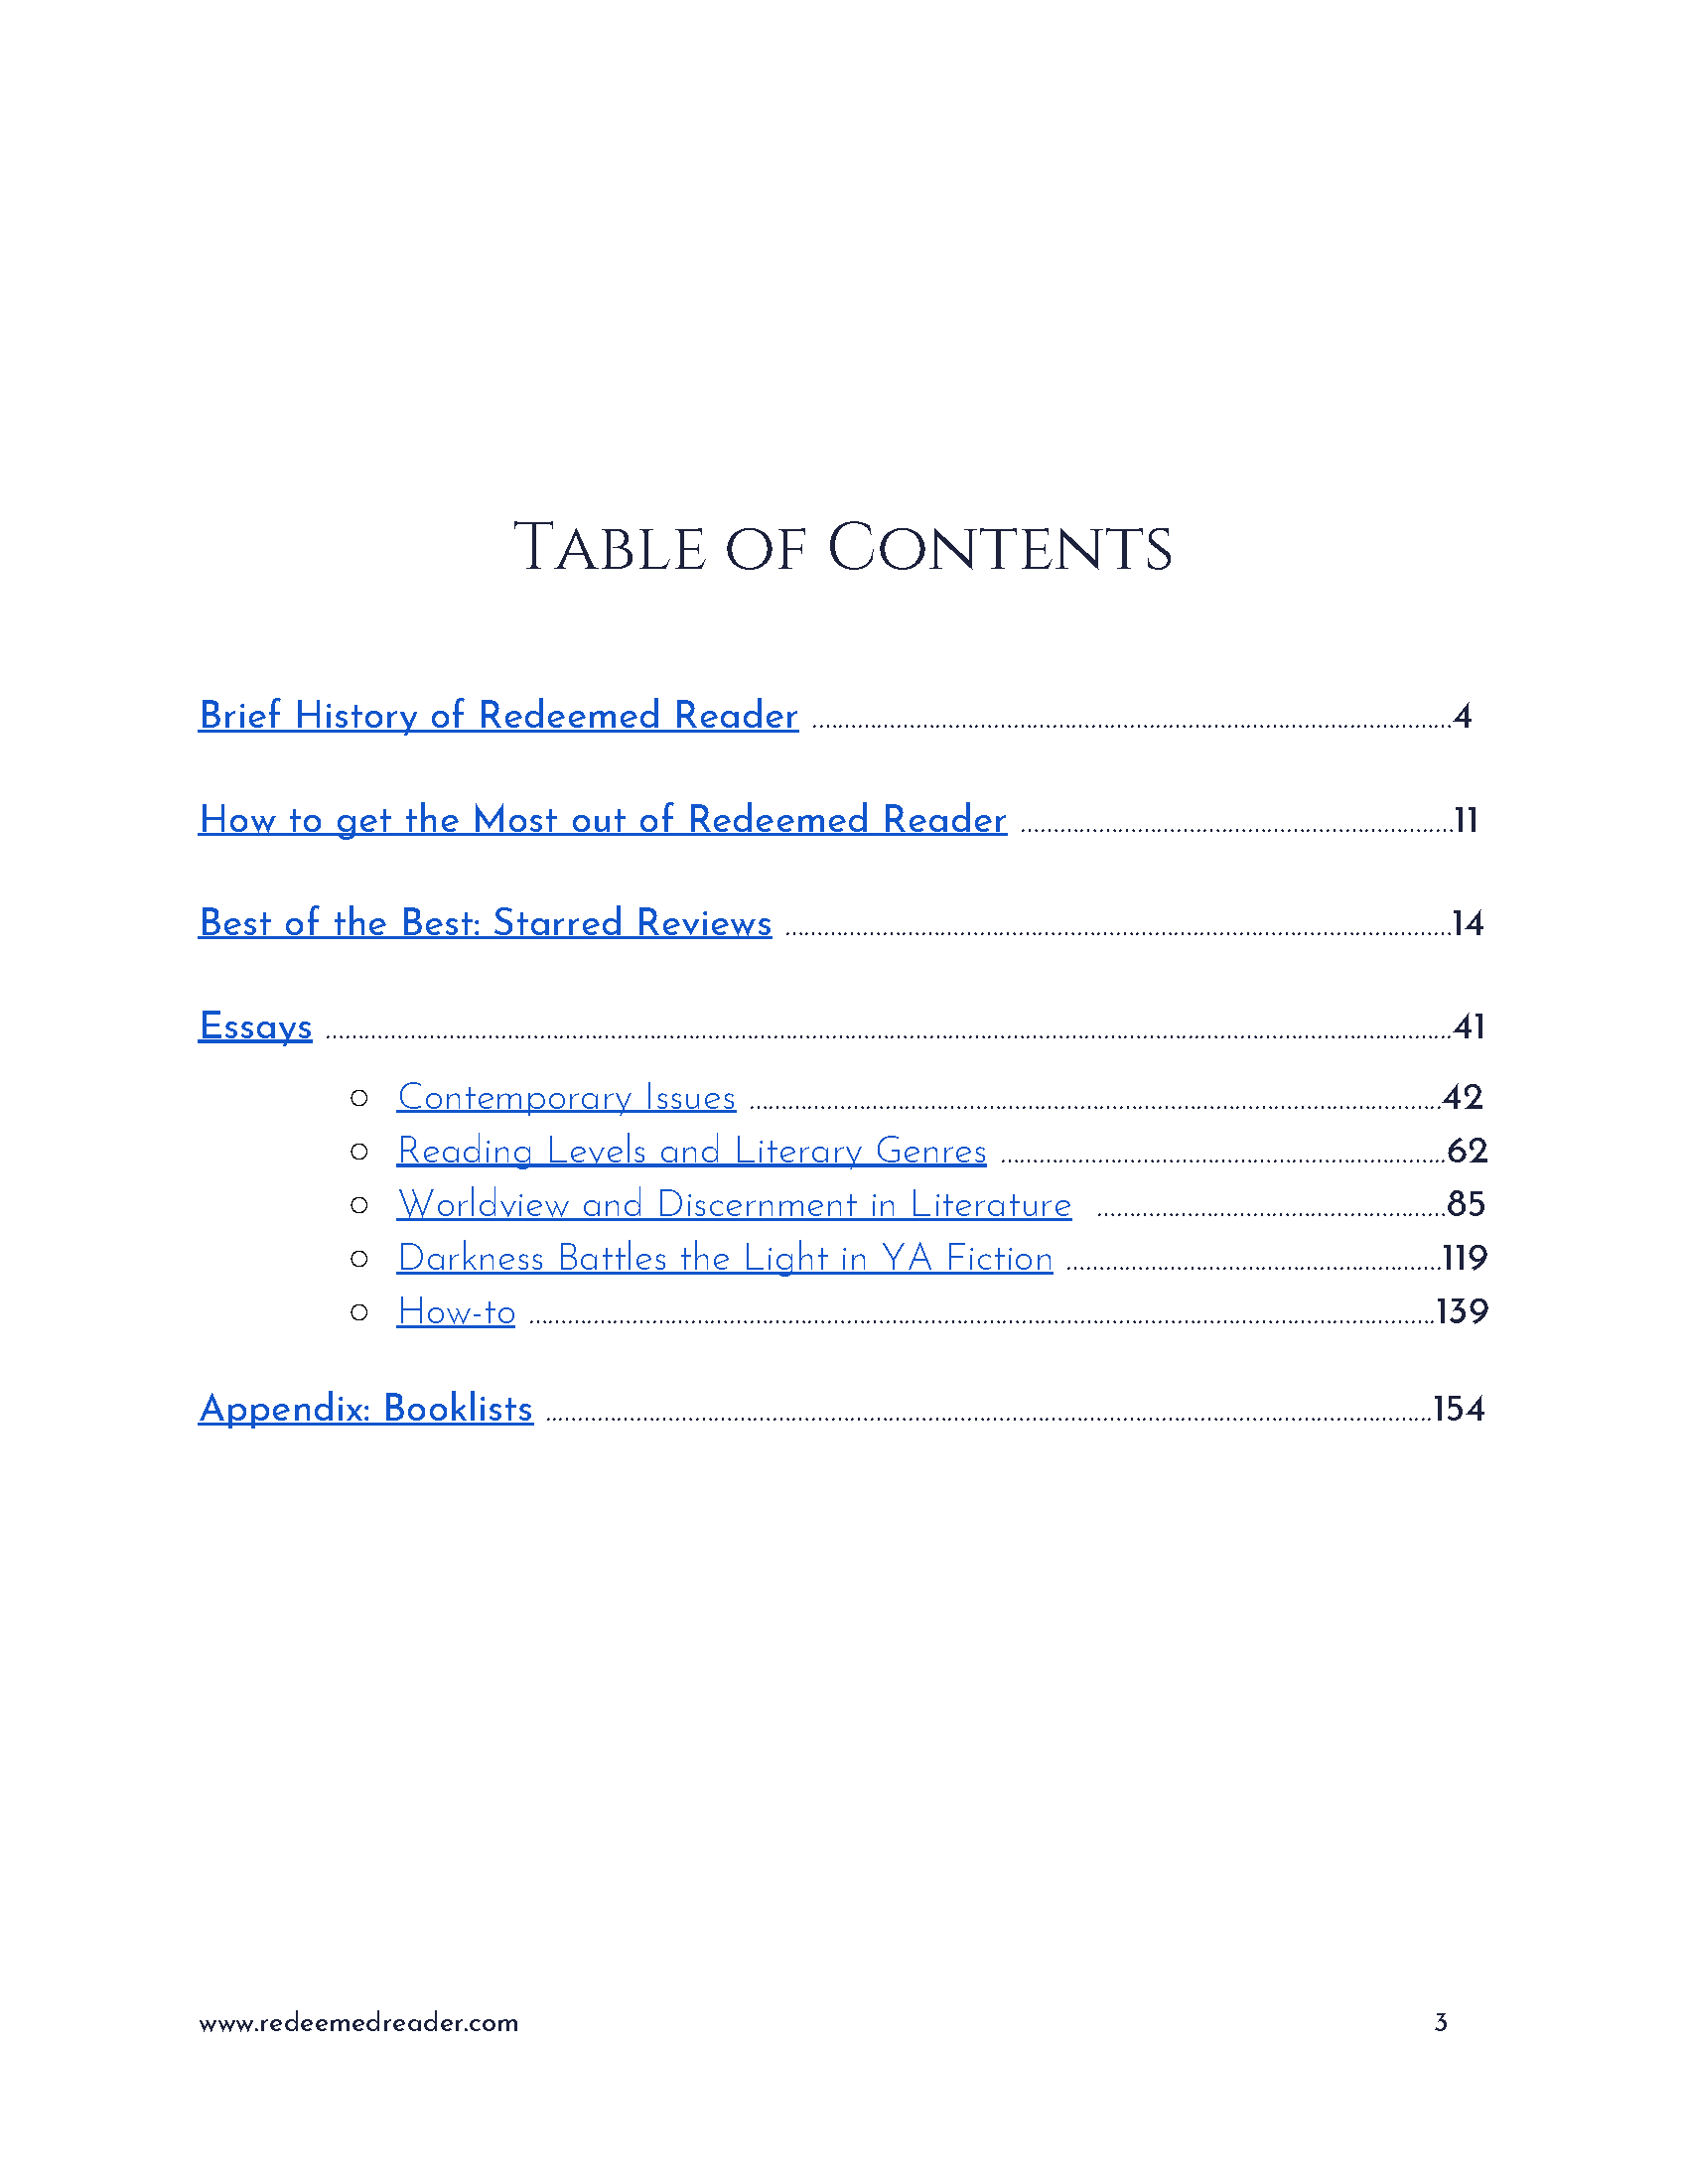 Redeemed Reader Companion Table of Contents